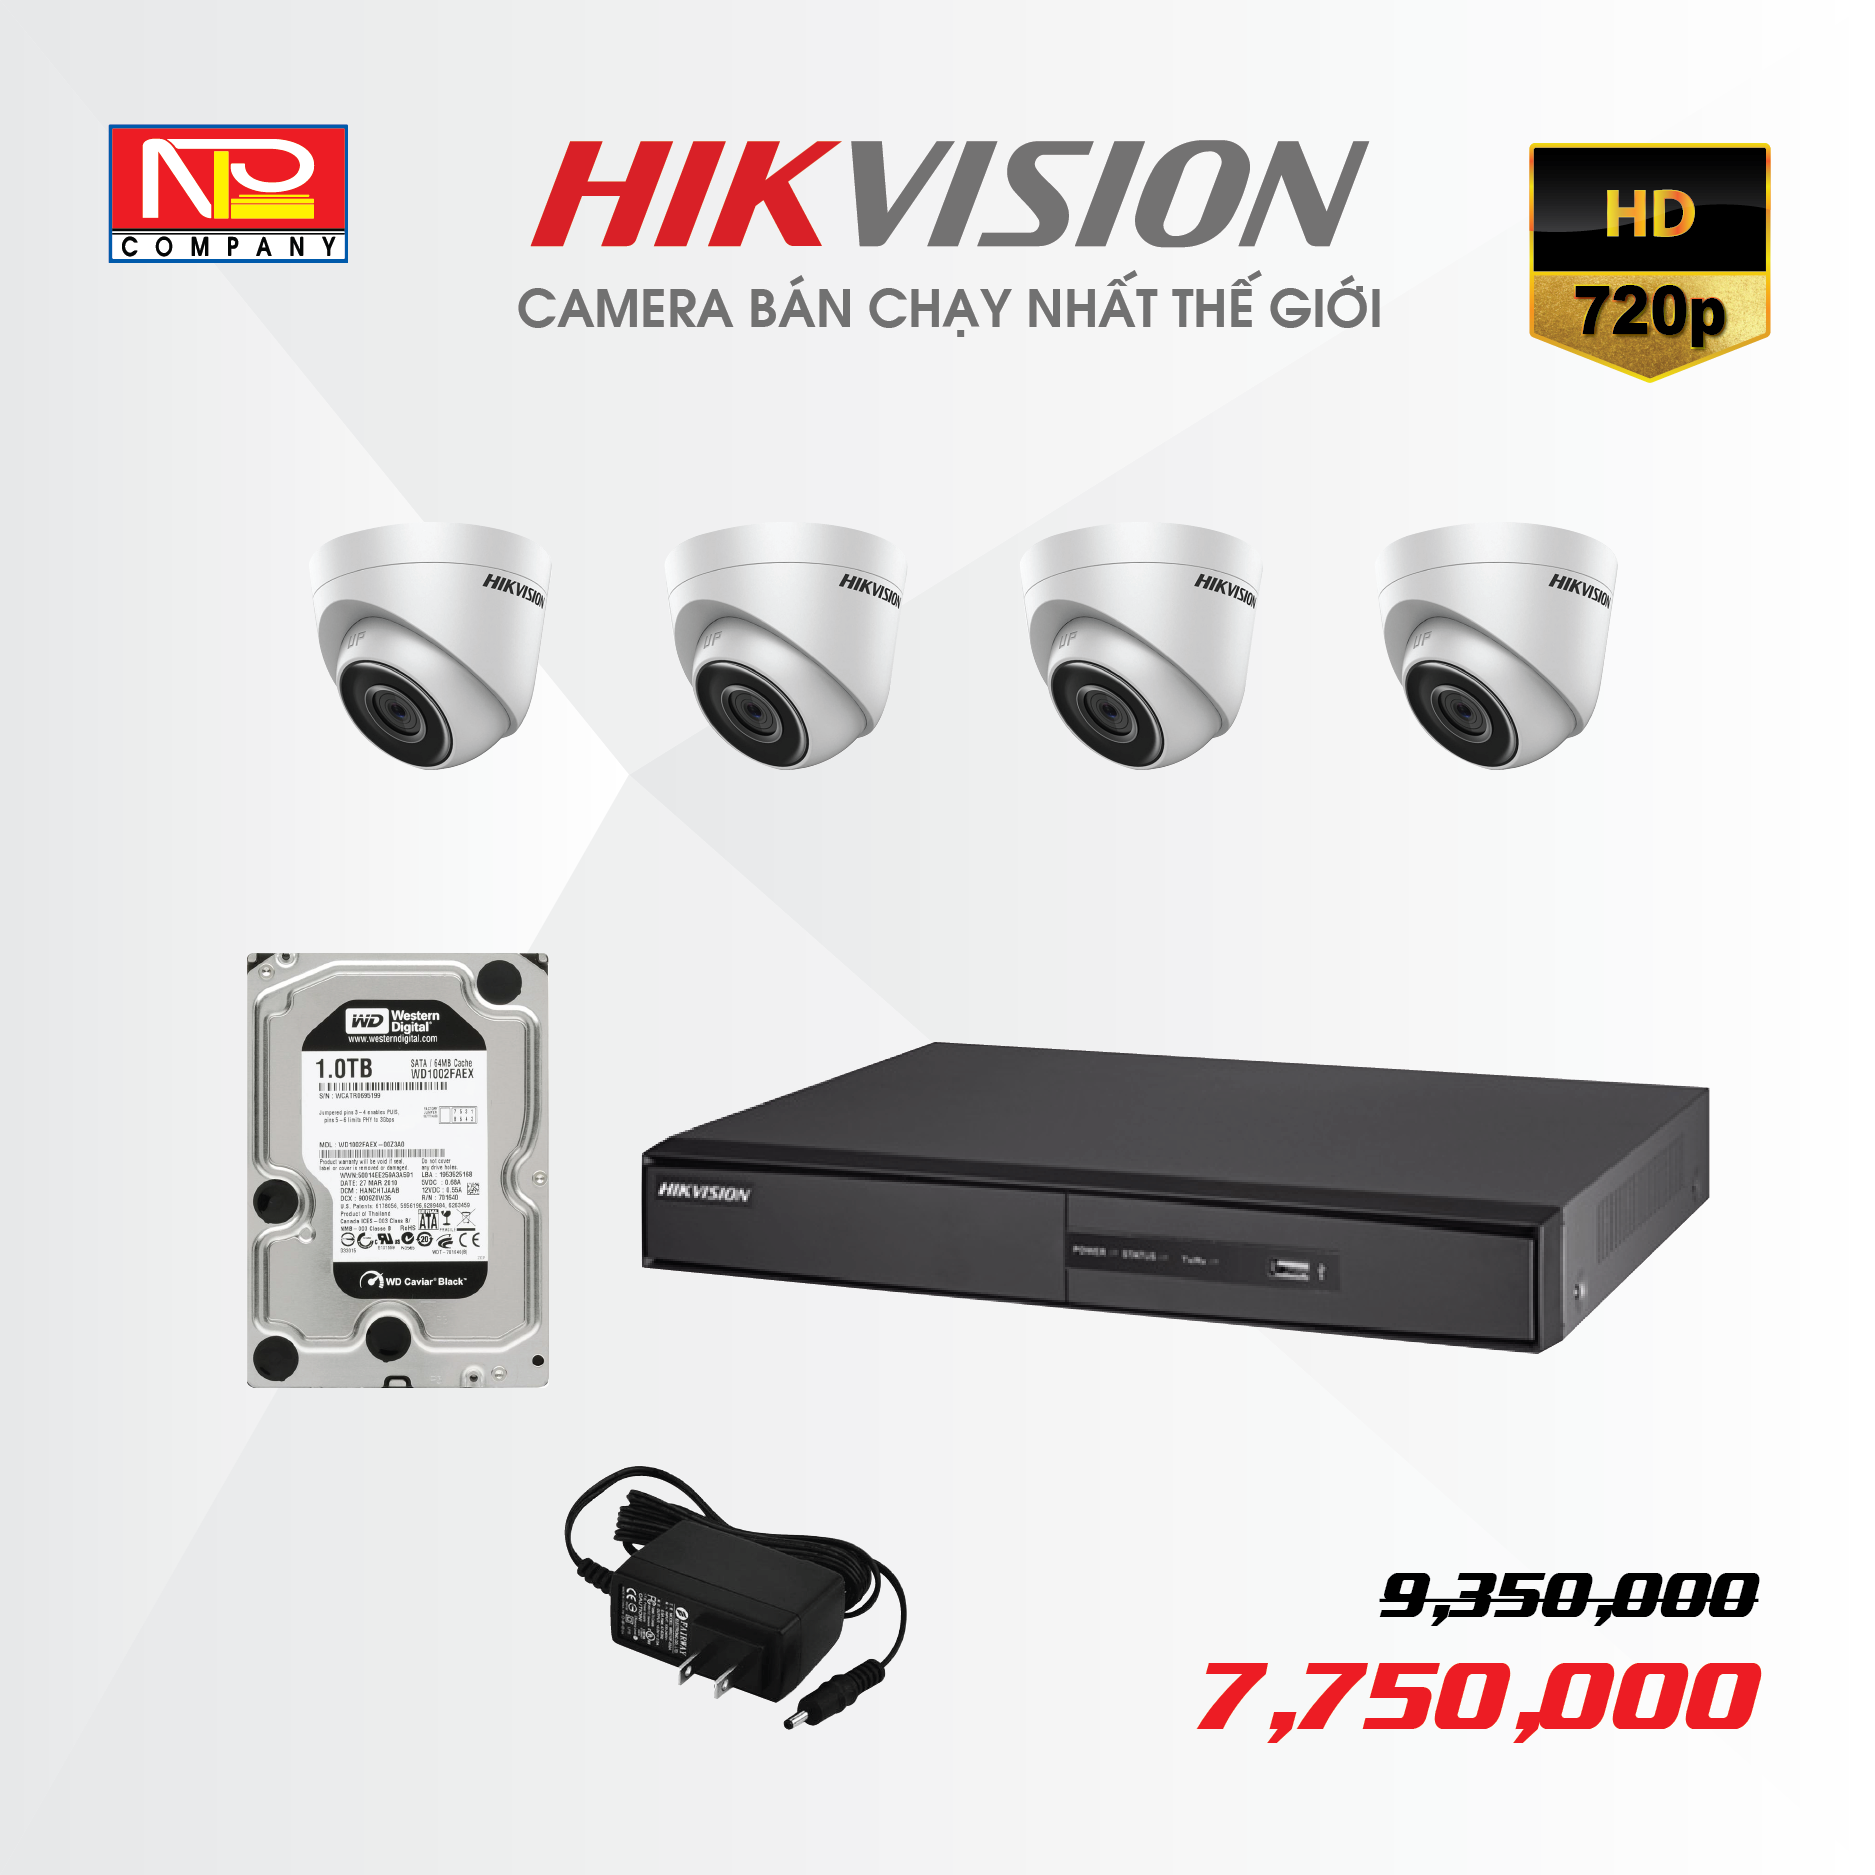 Bộ kit 4 camera IP Hikvision HD720P